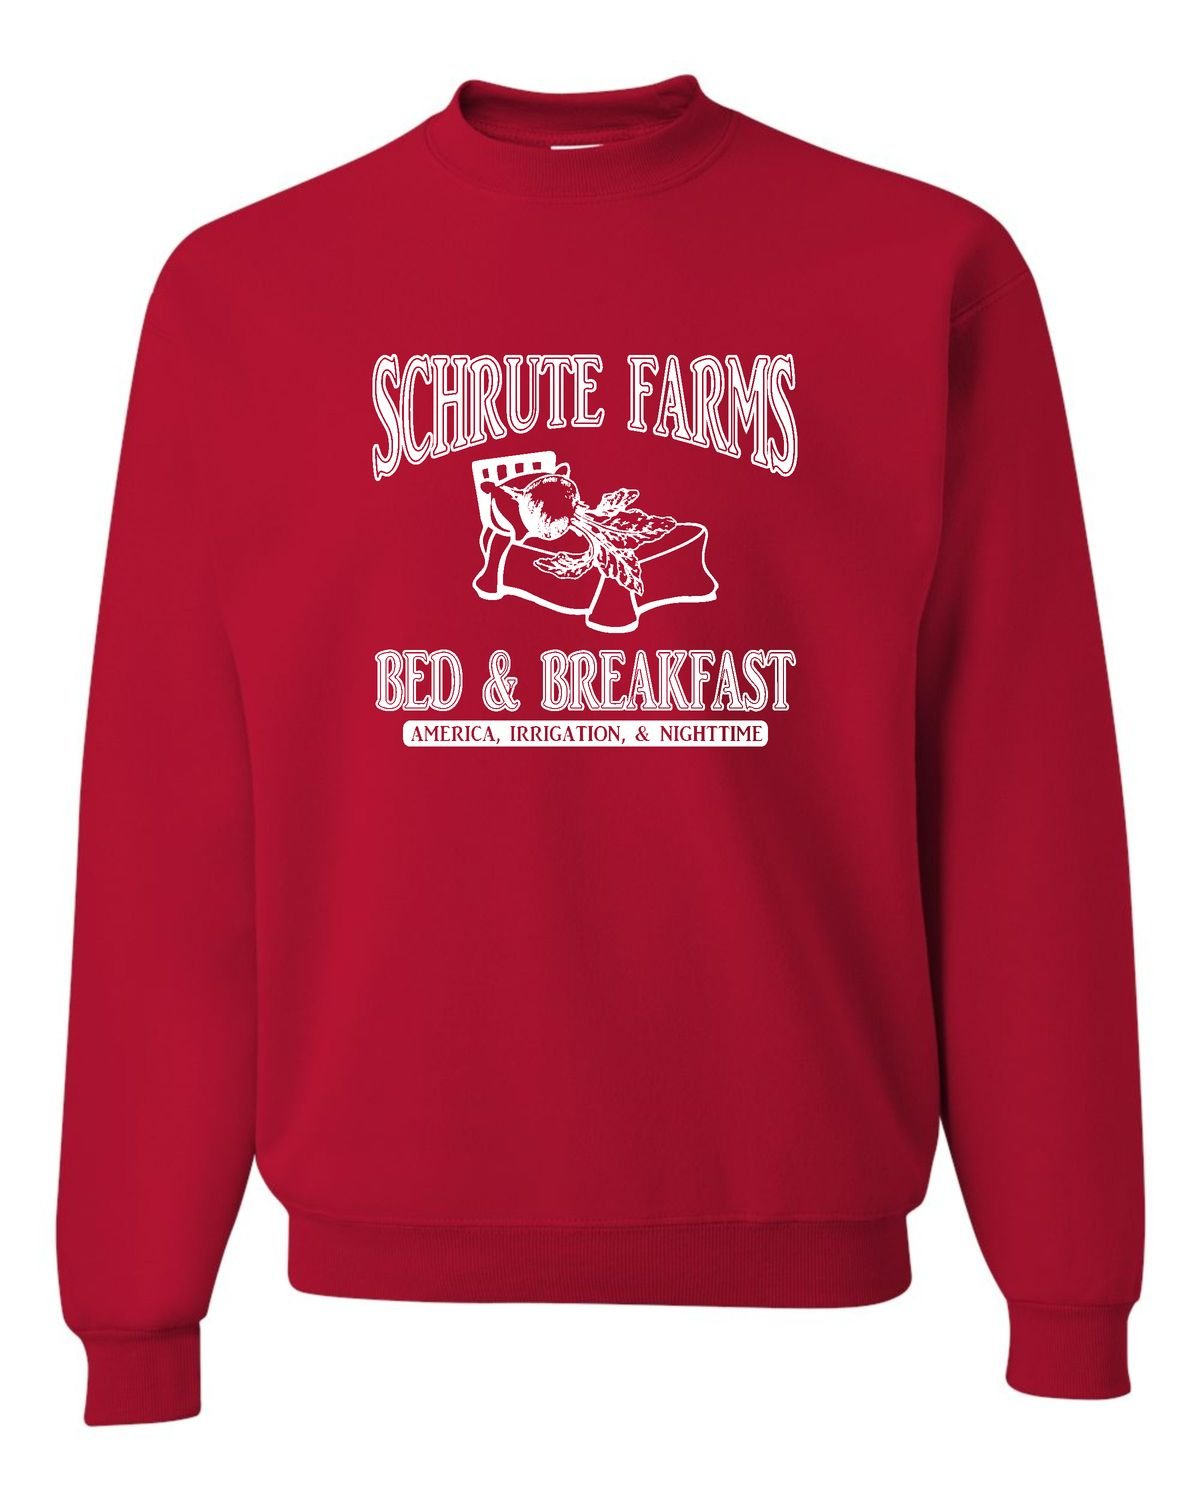 Go All Out Screenprinting Adult Room Themes Schrute Farms Bed & Breakfast Sweatshirt